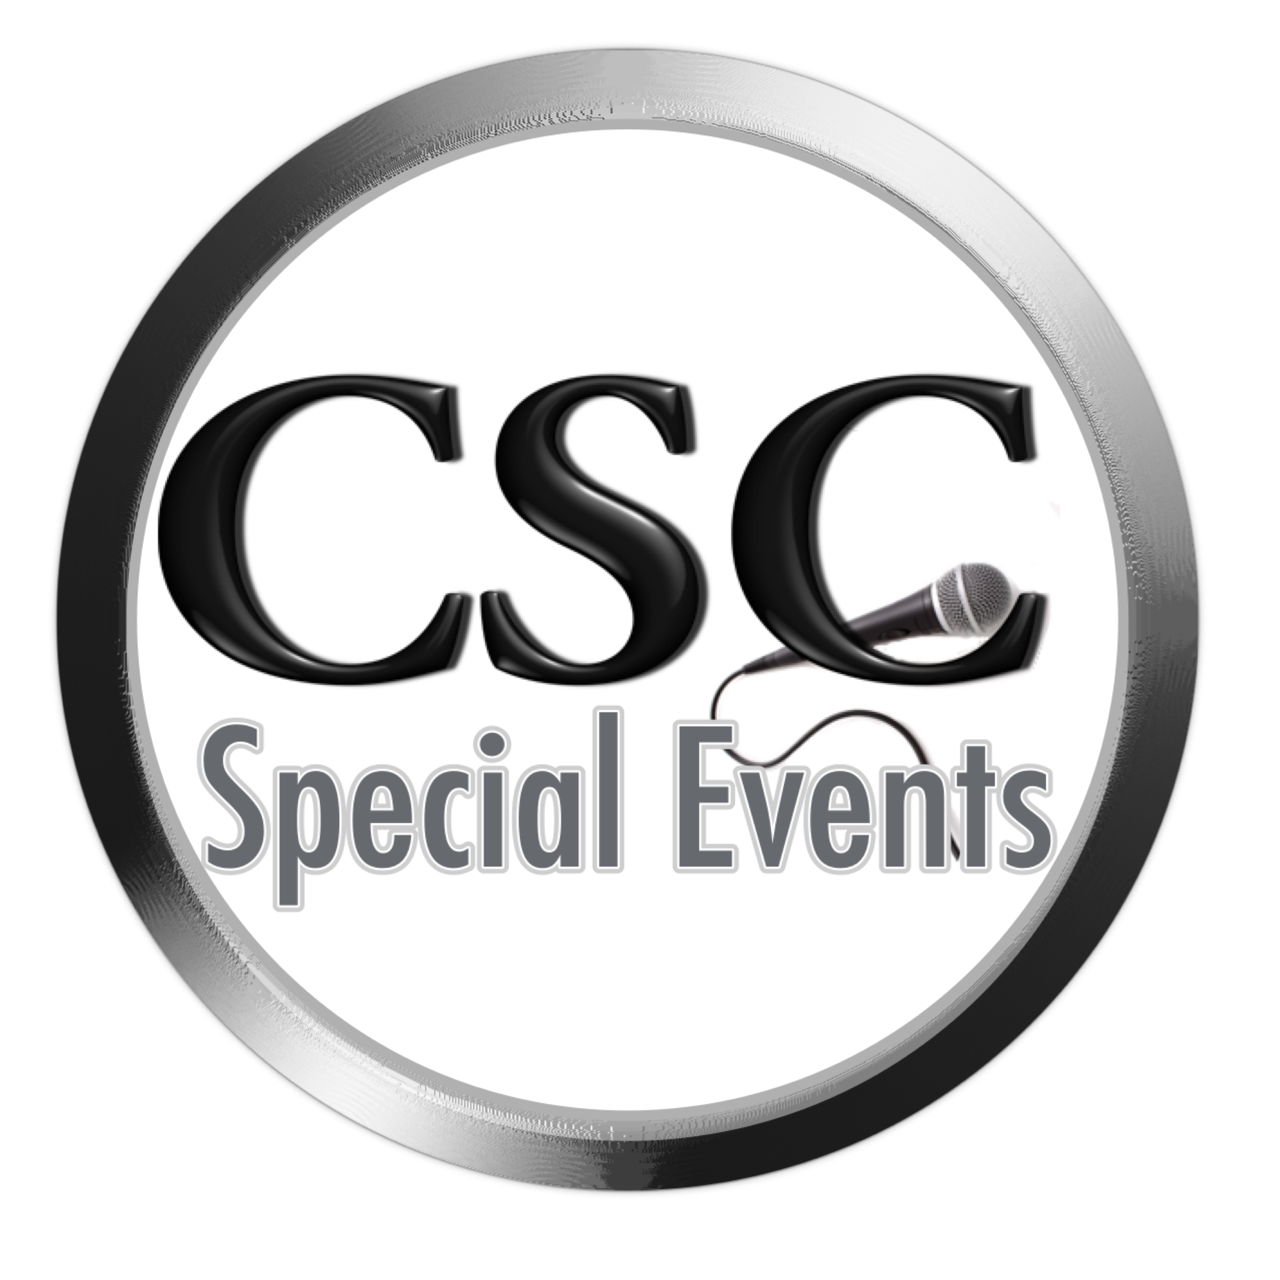 CSC Logo in badge 1